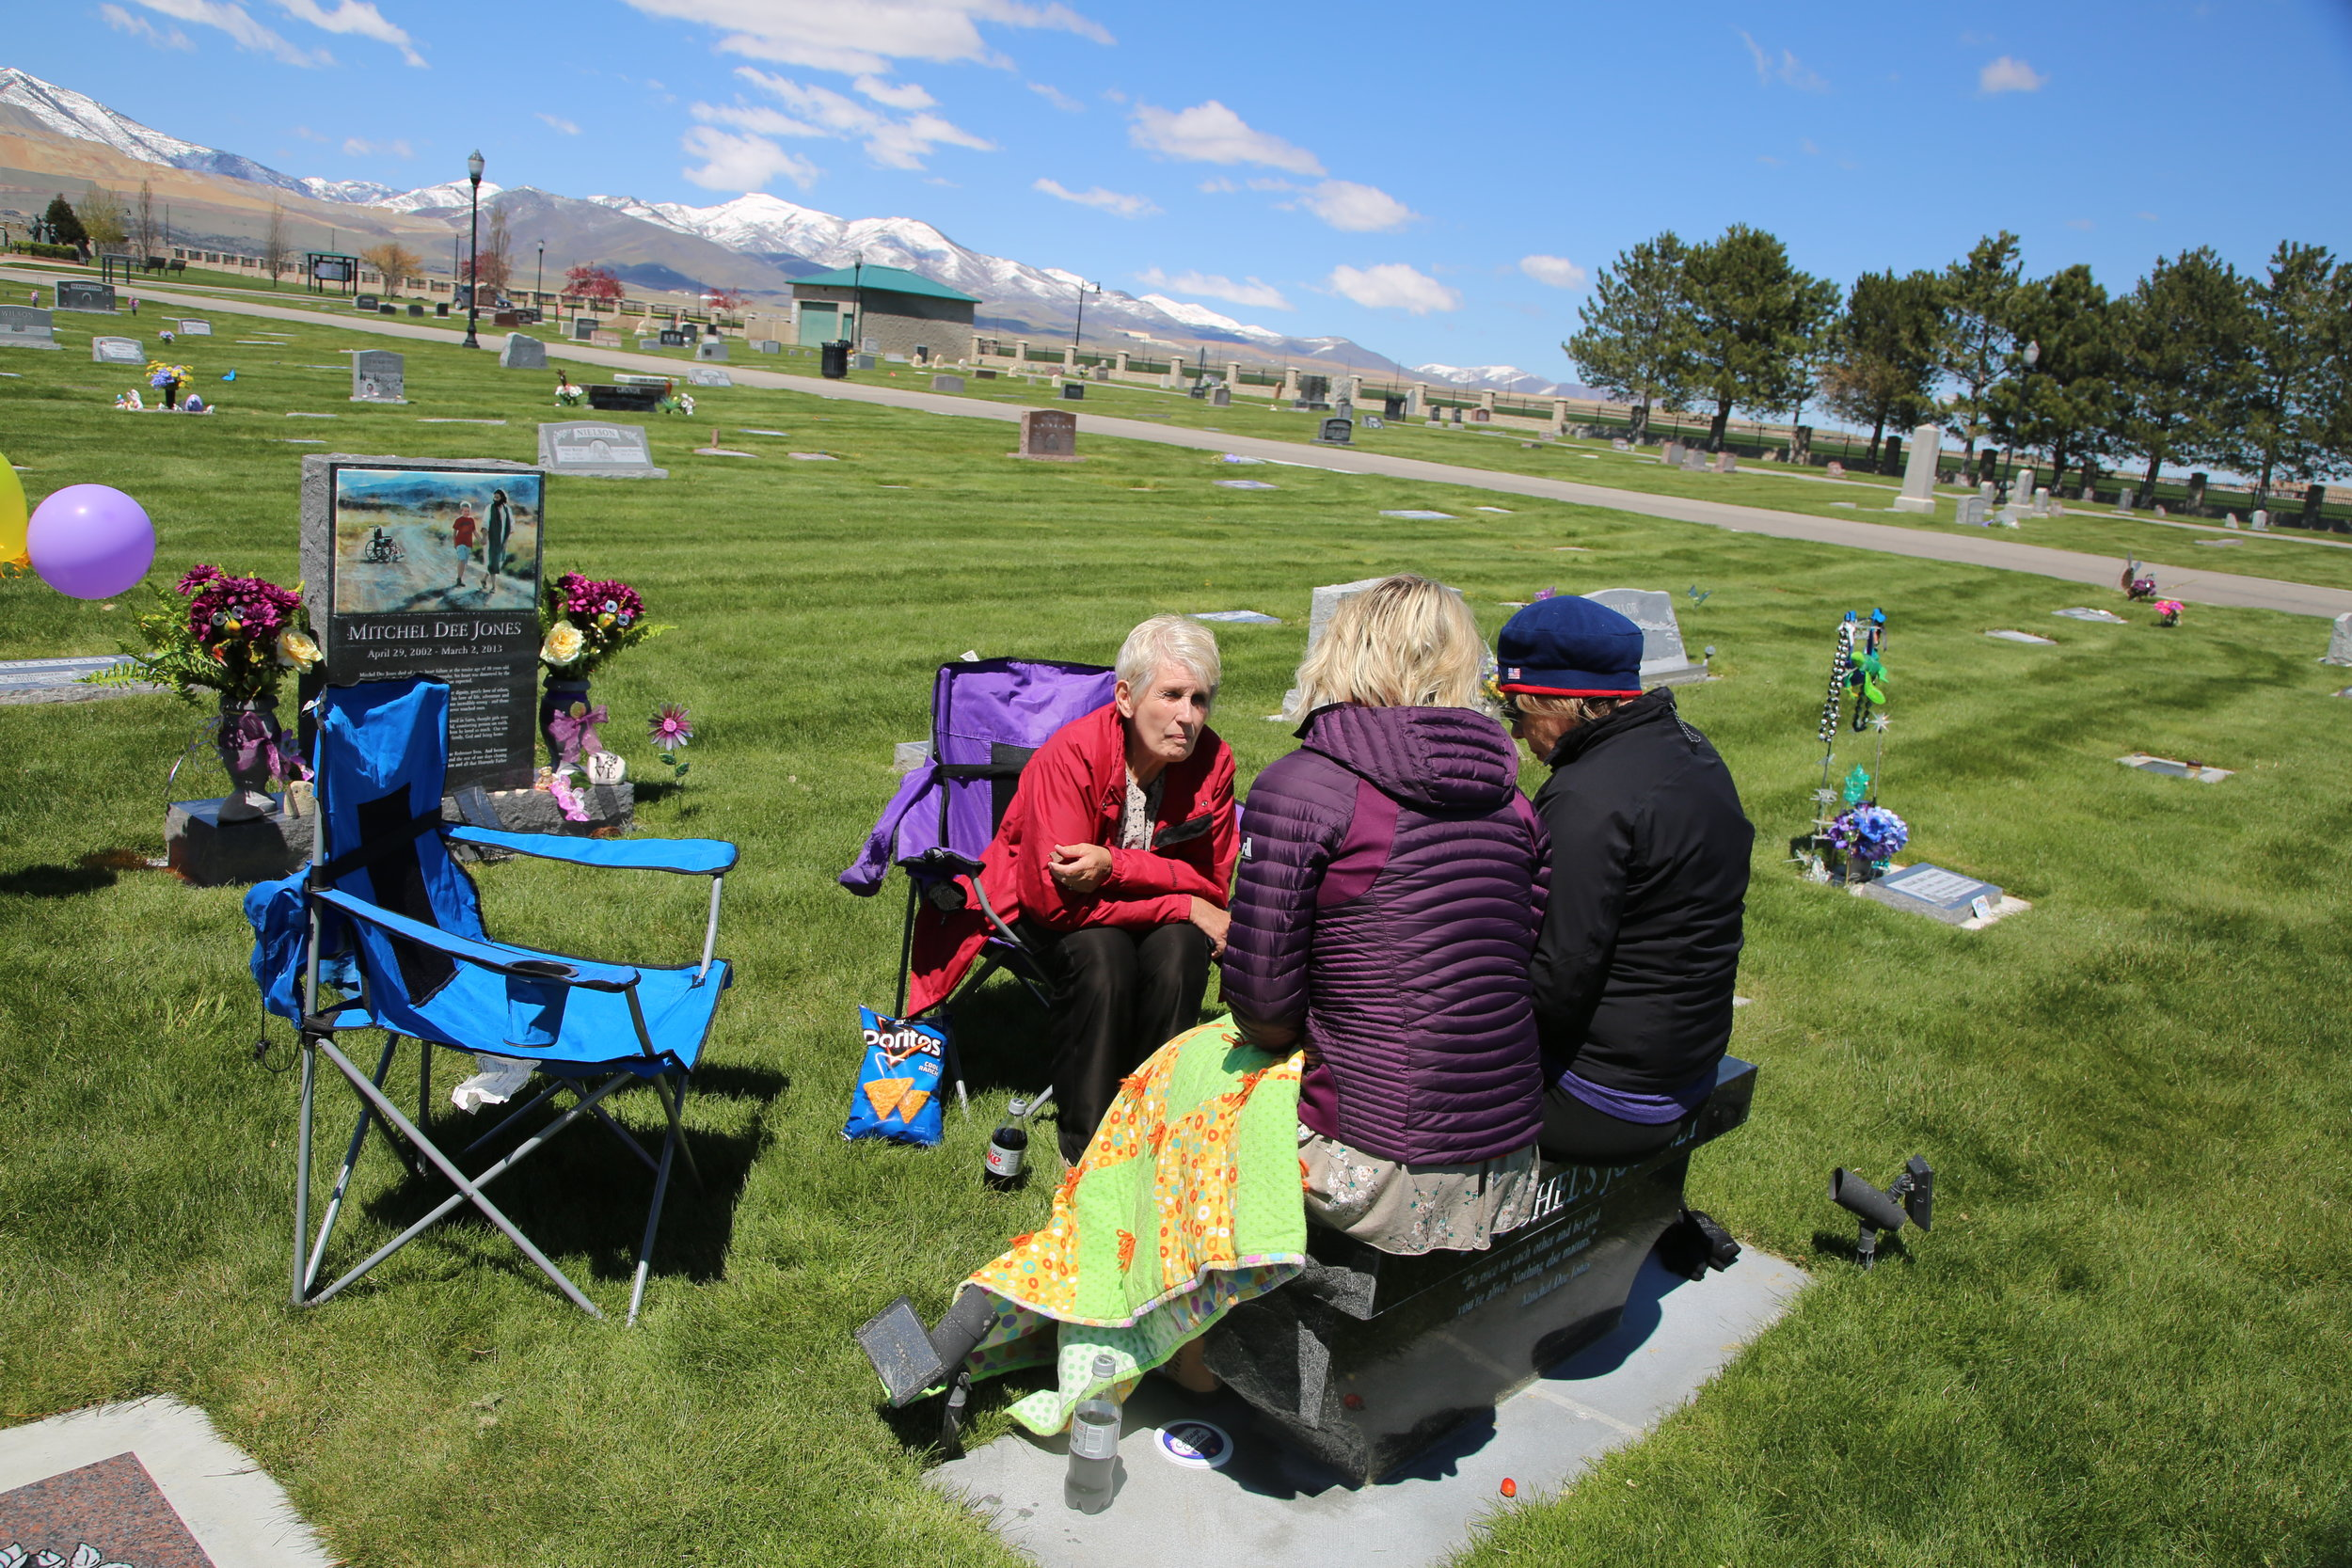 Natalie met her mother and sister for a picnic at Mitchell's place of rest today.